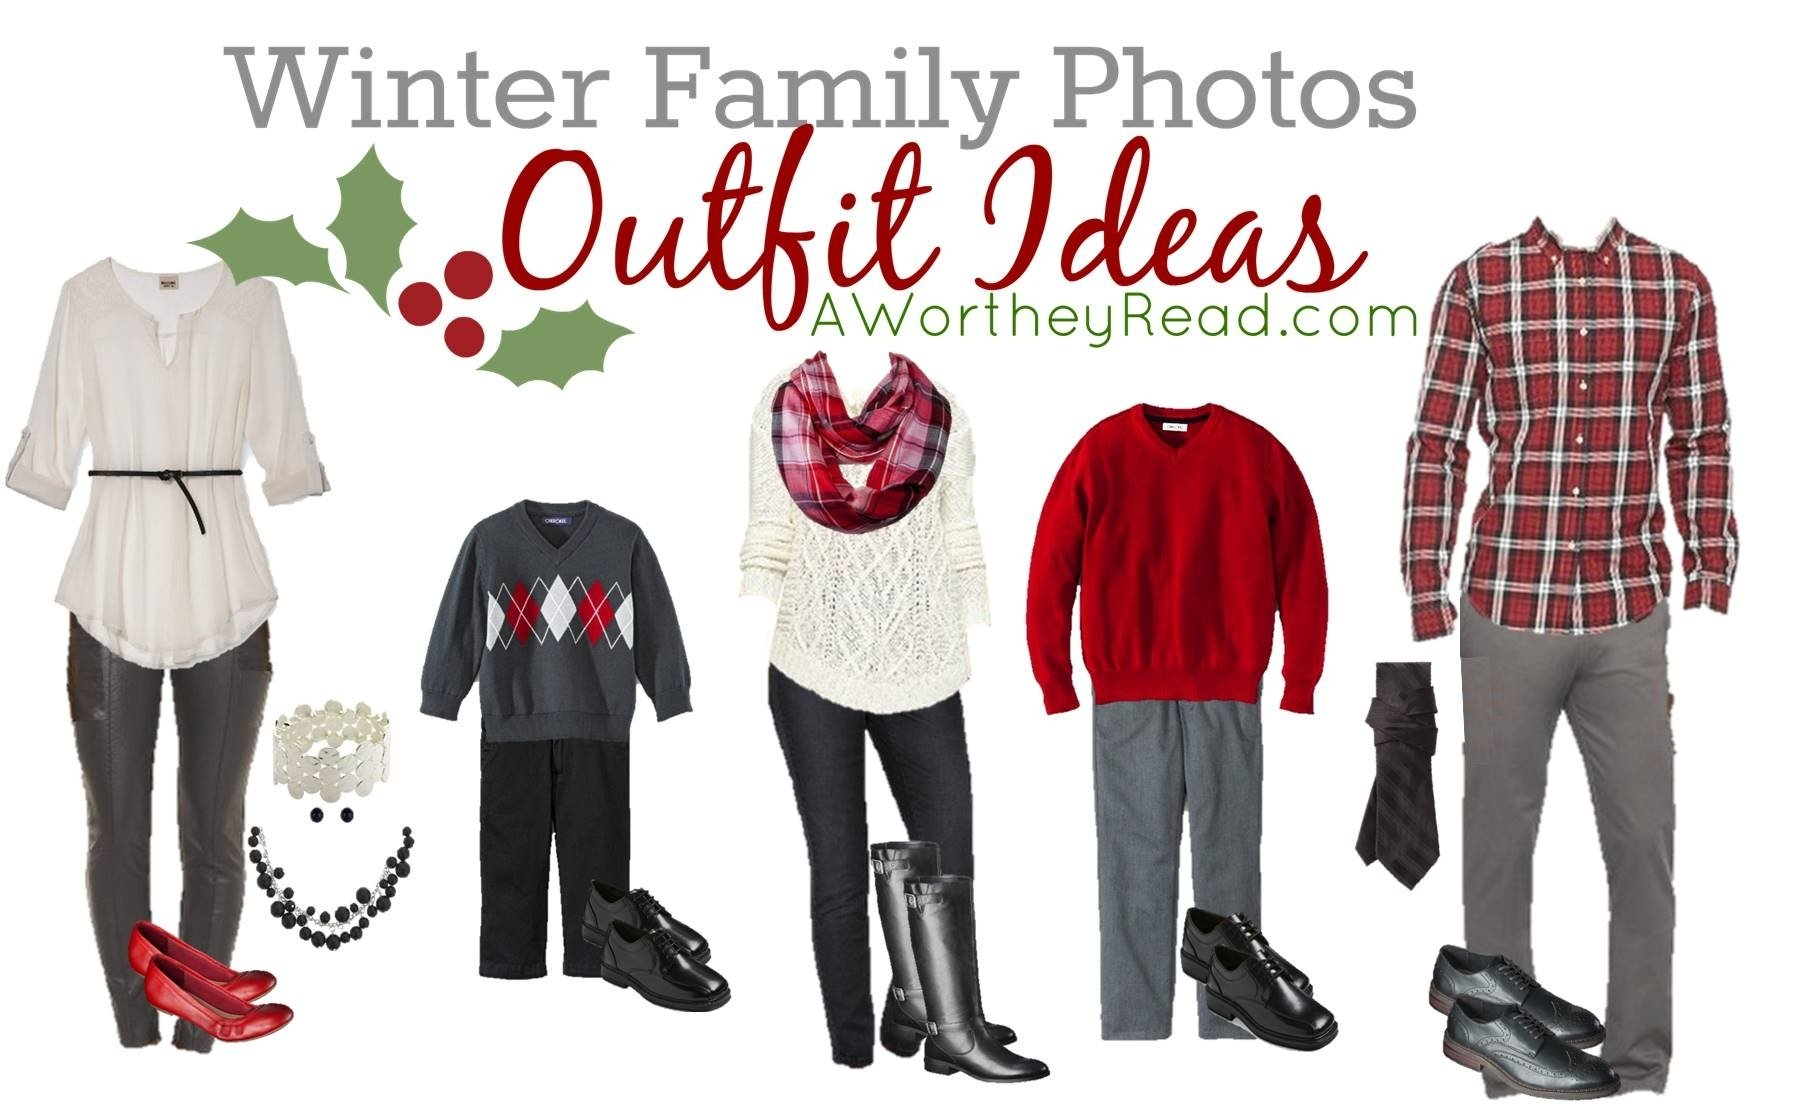 10 Most Popular Family Christmas Picture Outfit Ideas family photo outfit ideas red white black fall family photos 1 2020